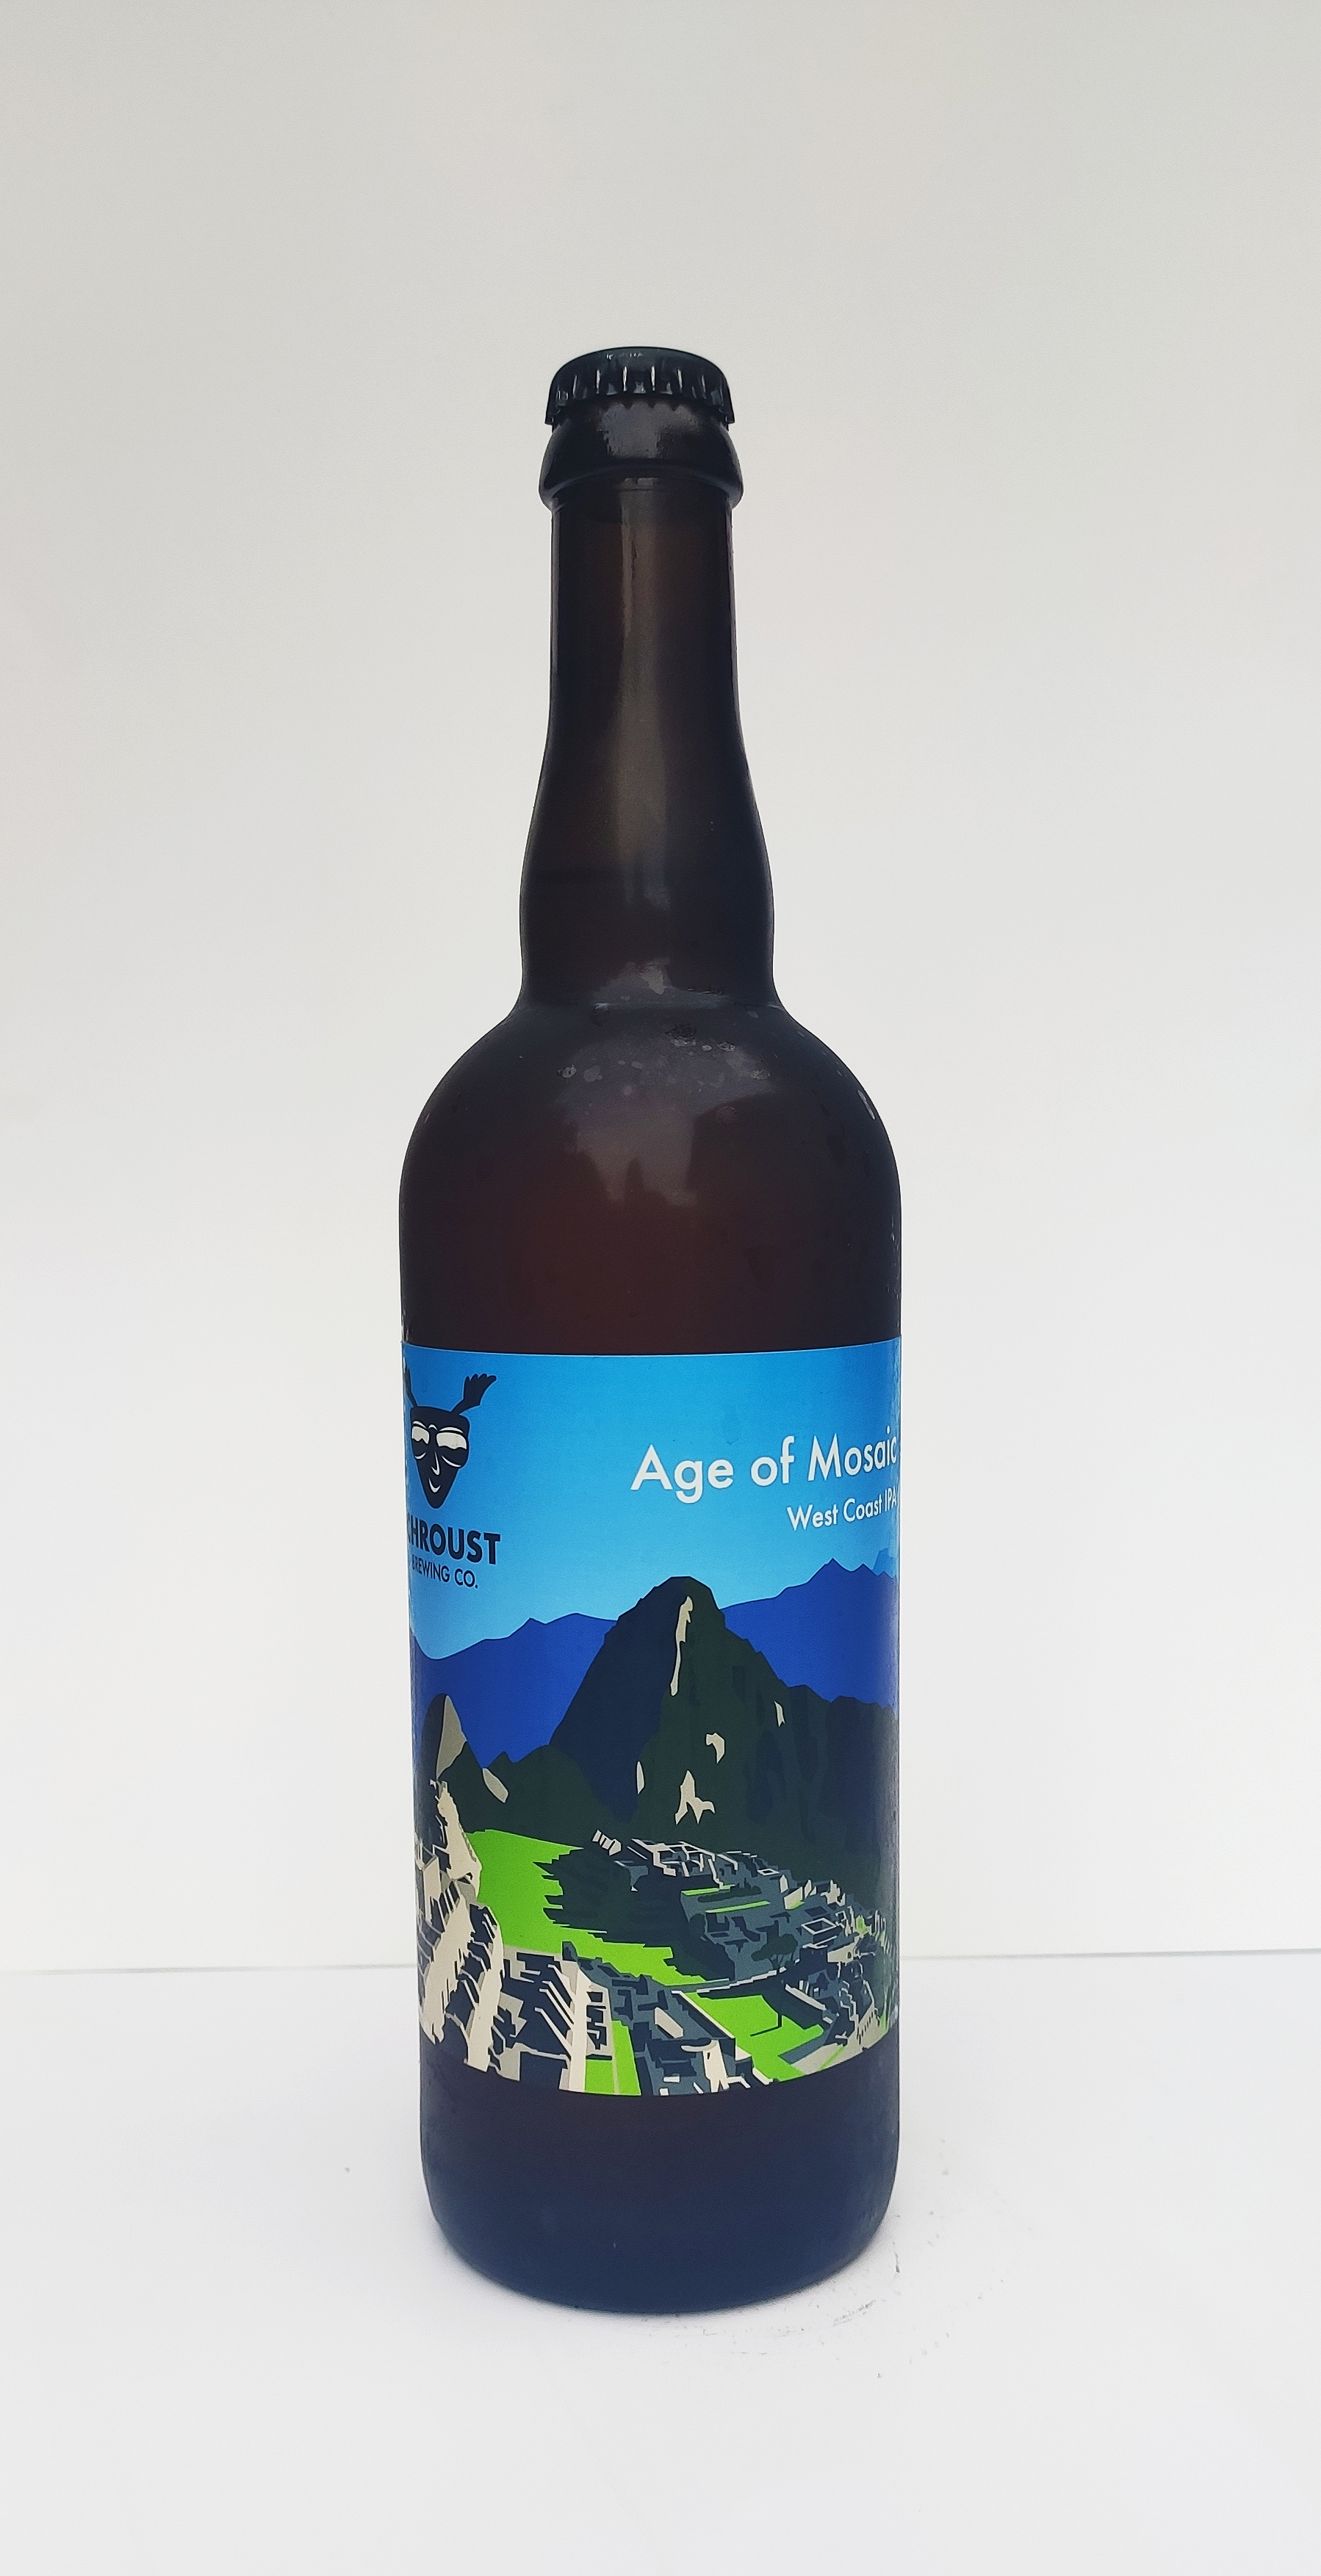 Chroust Age of Mosaic IPA 14°